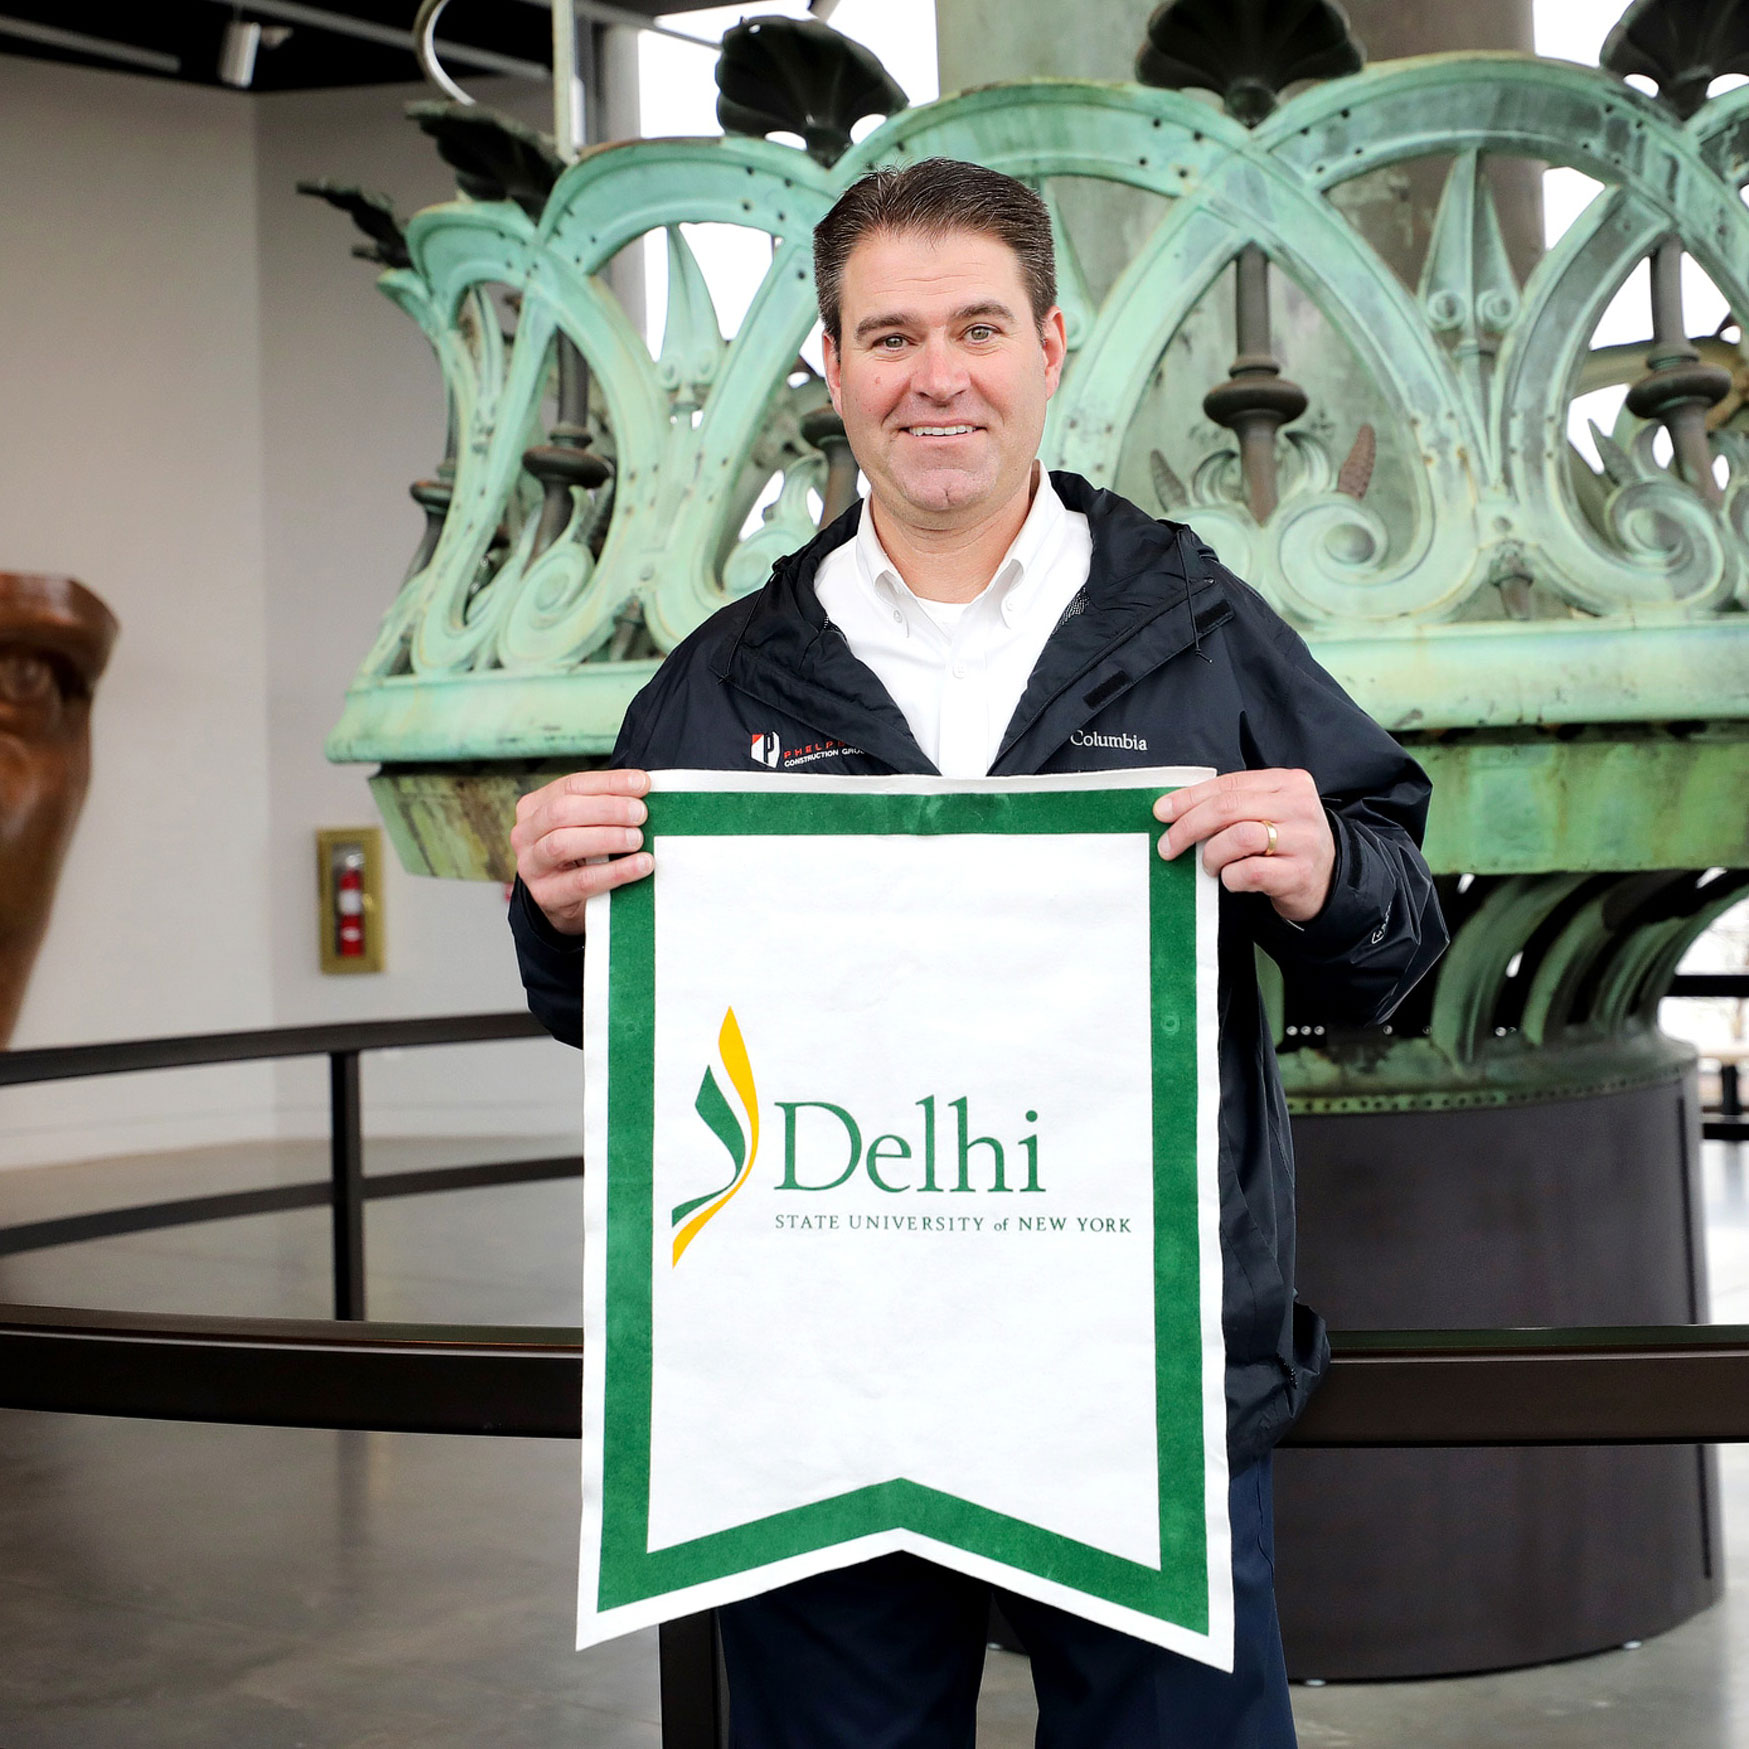 Jeff Rainforth holding up SUNY Delhi banner